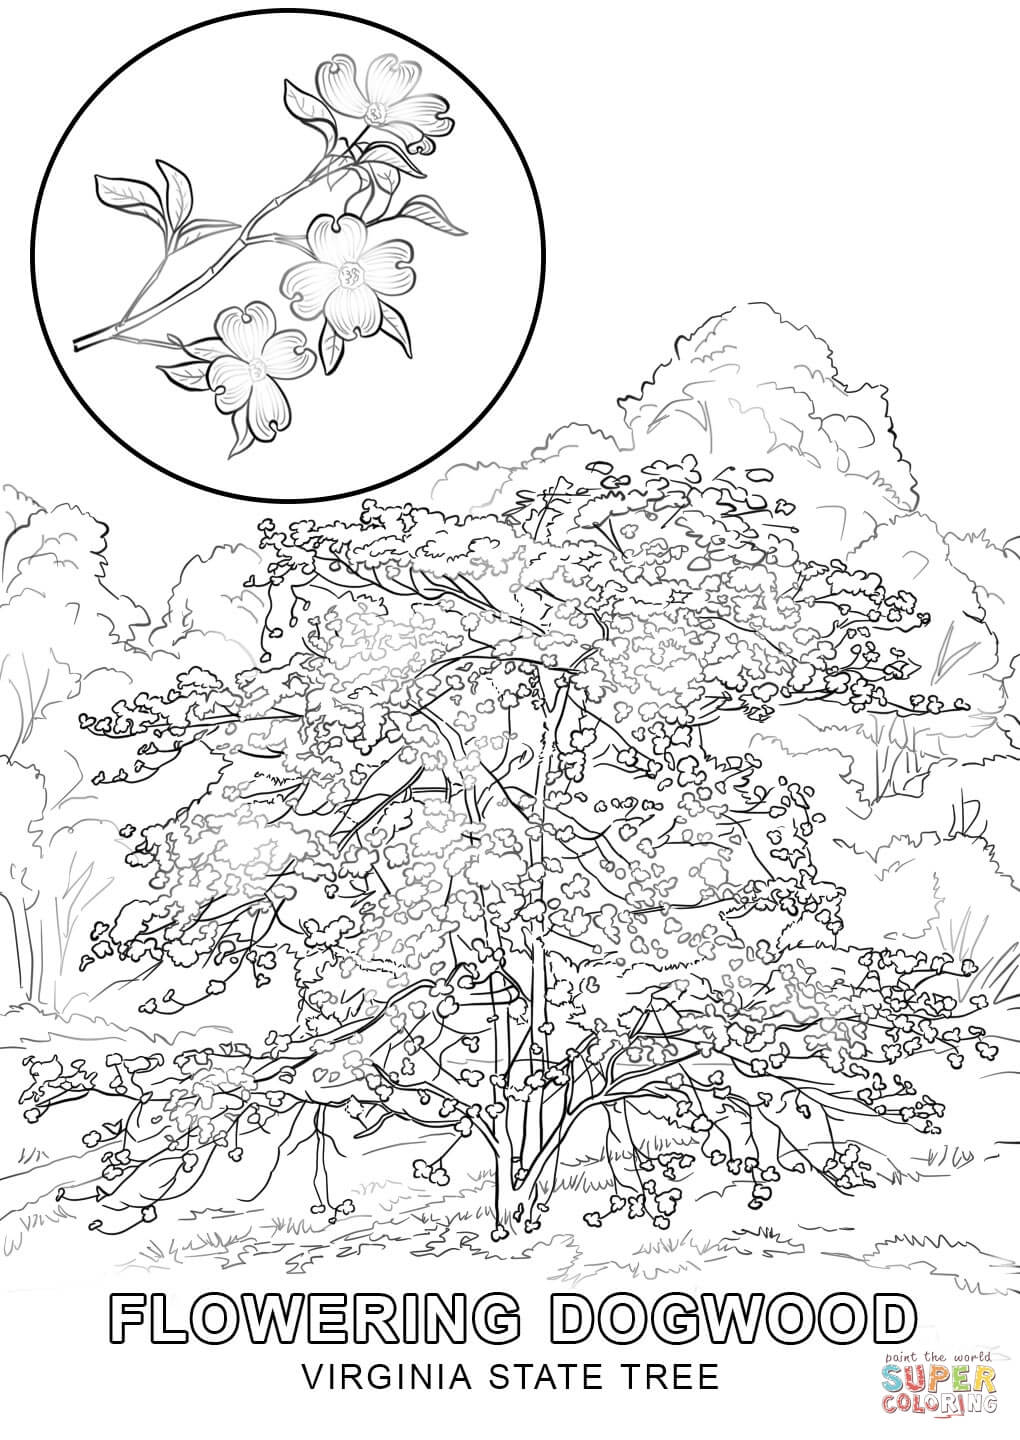 virginia state symbols coloring pages virginia state tree coloring page free printable coloring pages virginia symbols state